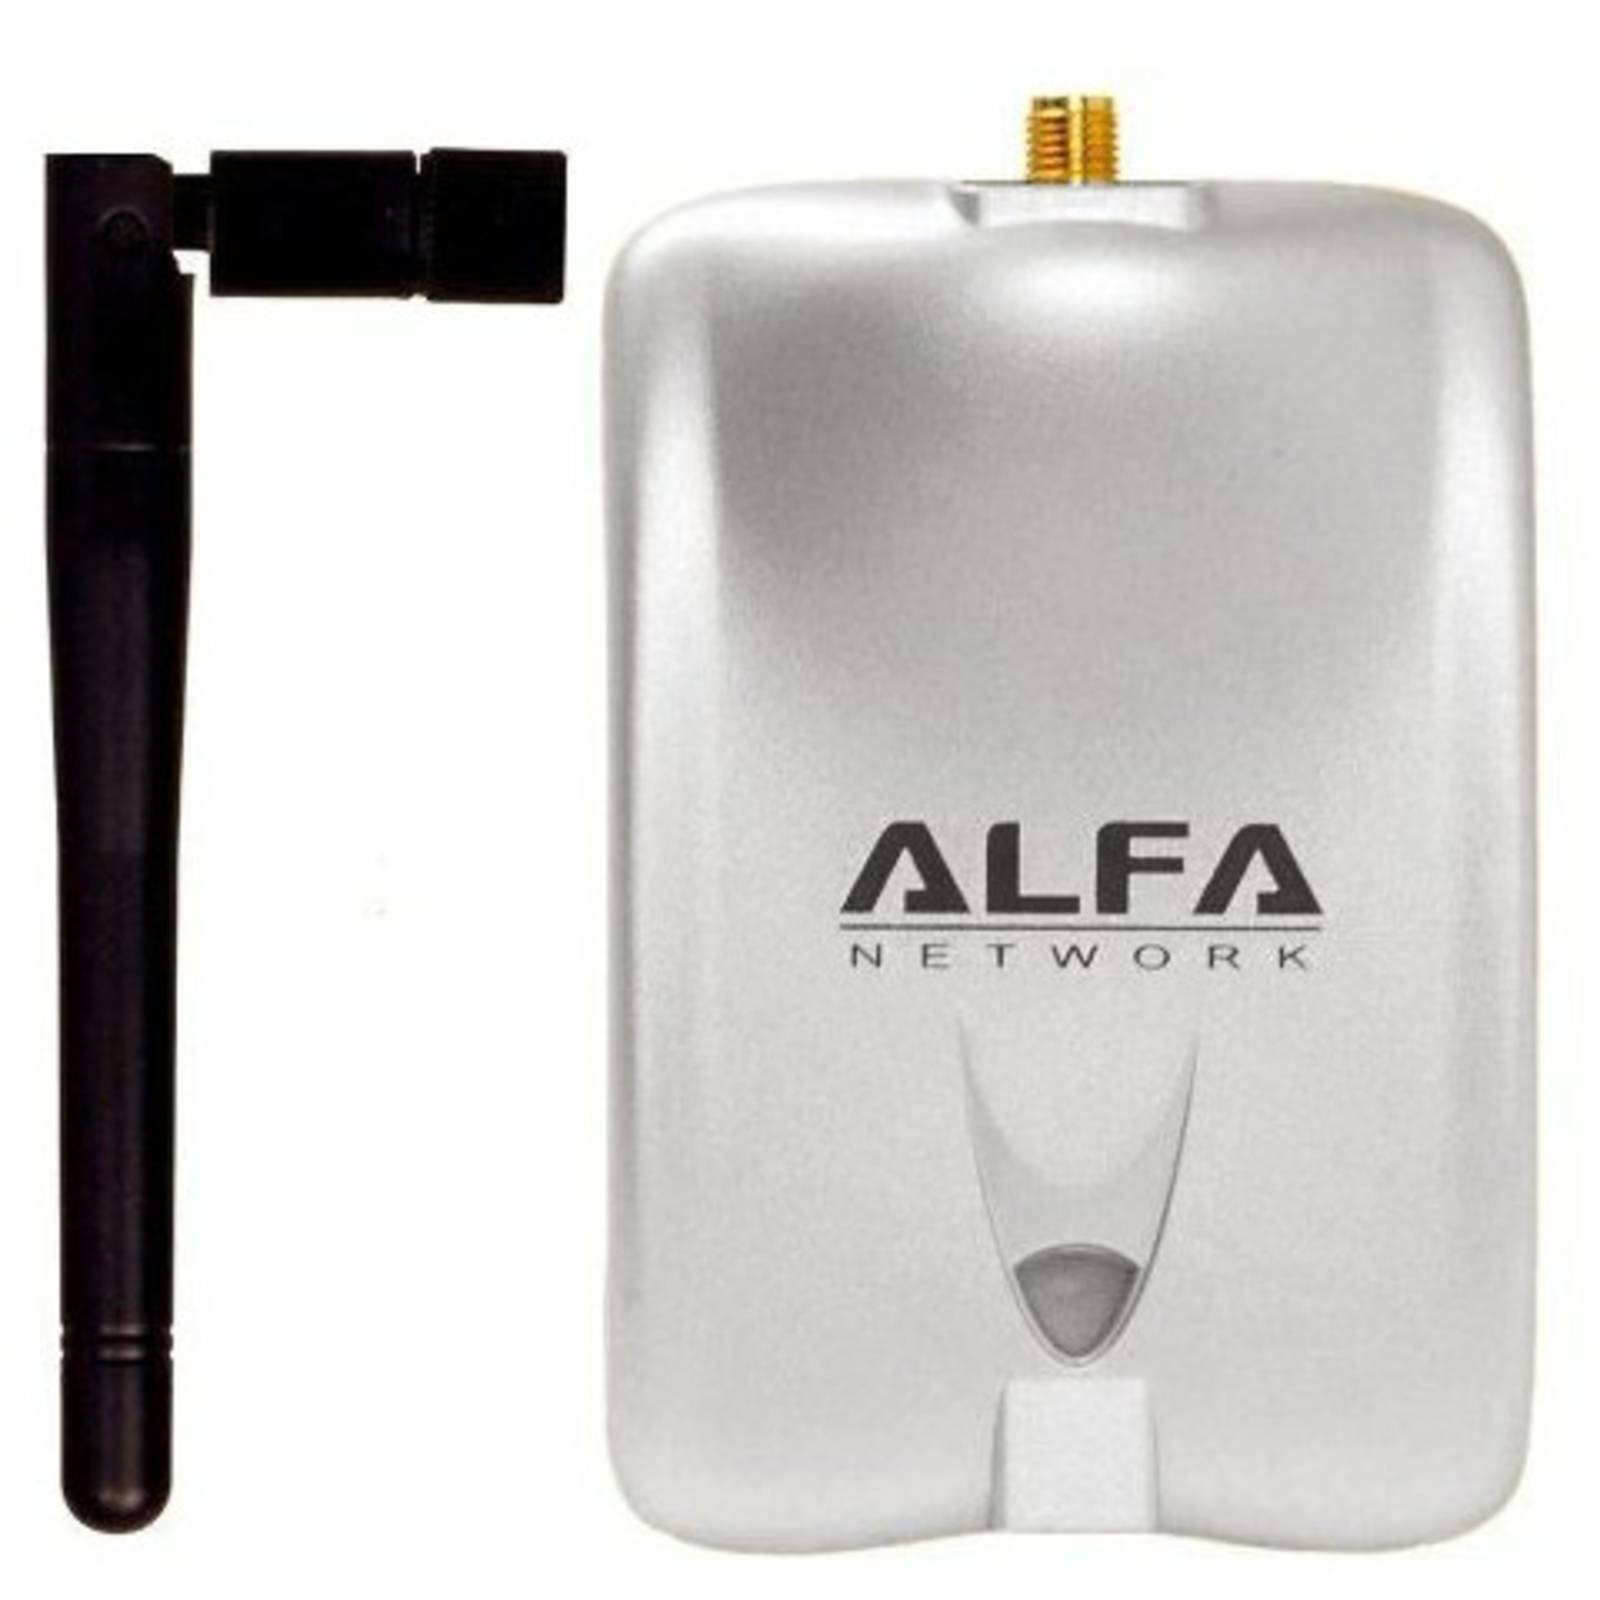 Alfa Network 802 11g high Power driver version